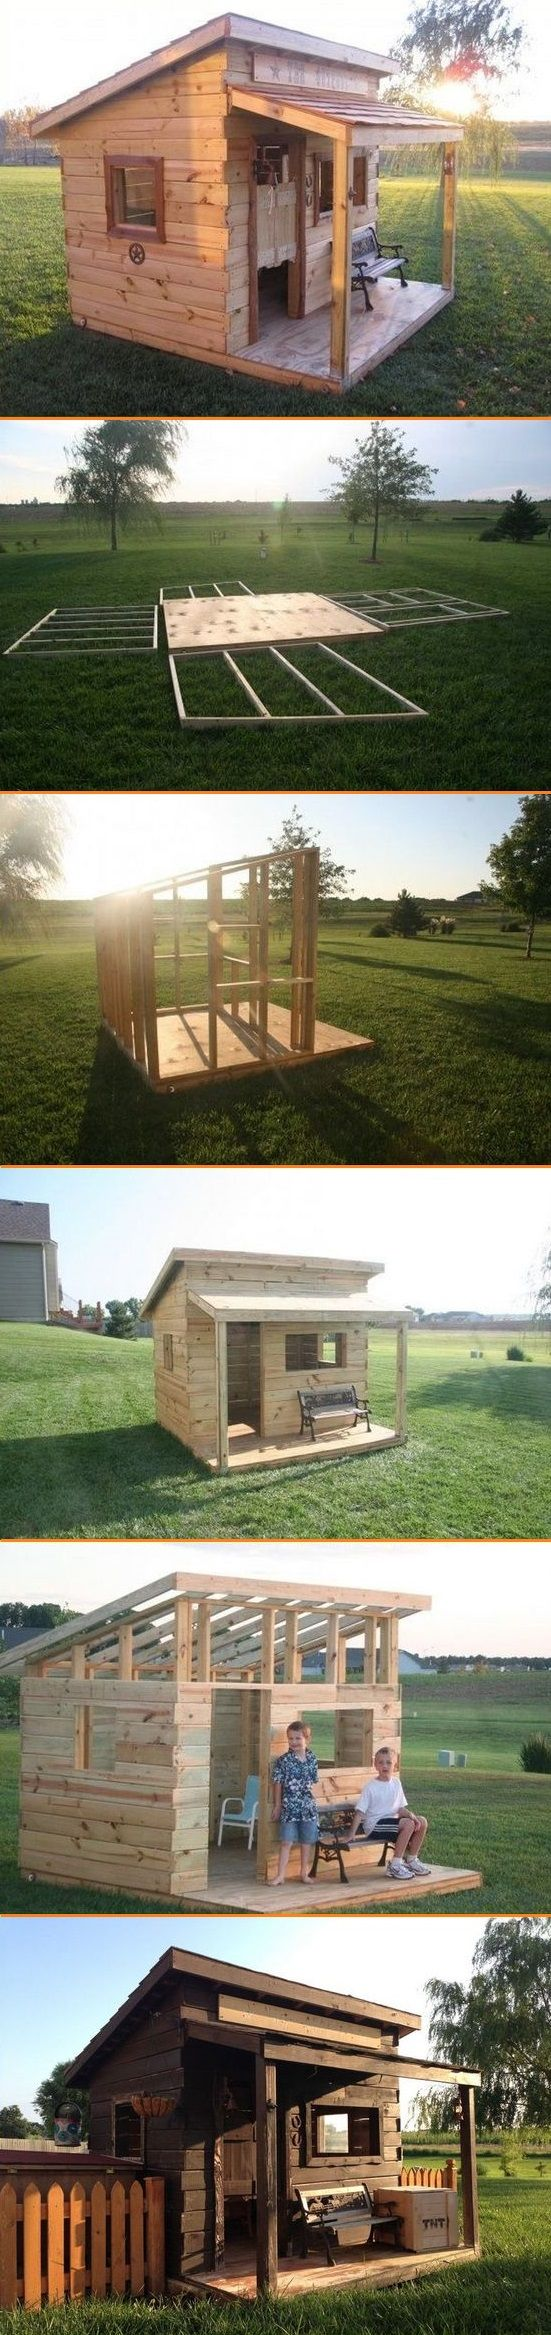 How to Build A Western Saloon Kid's Fort (Chicken Backyard)